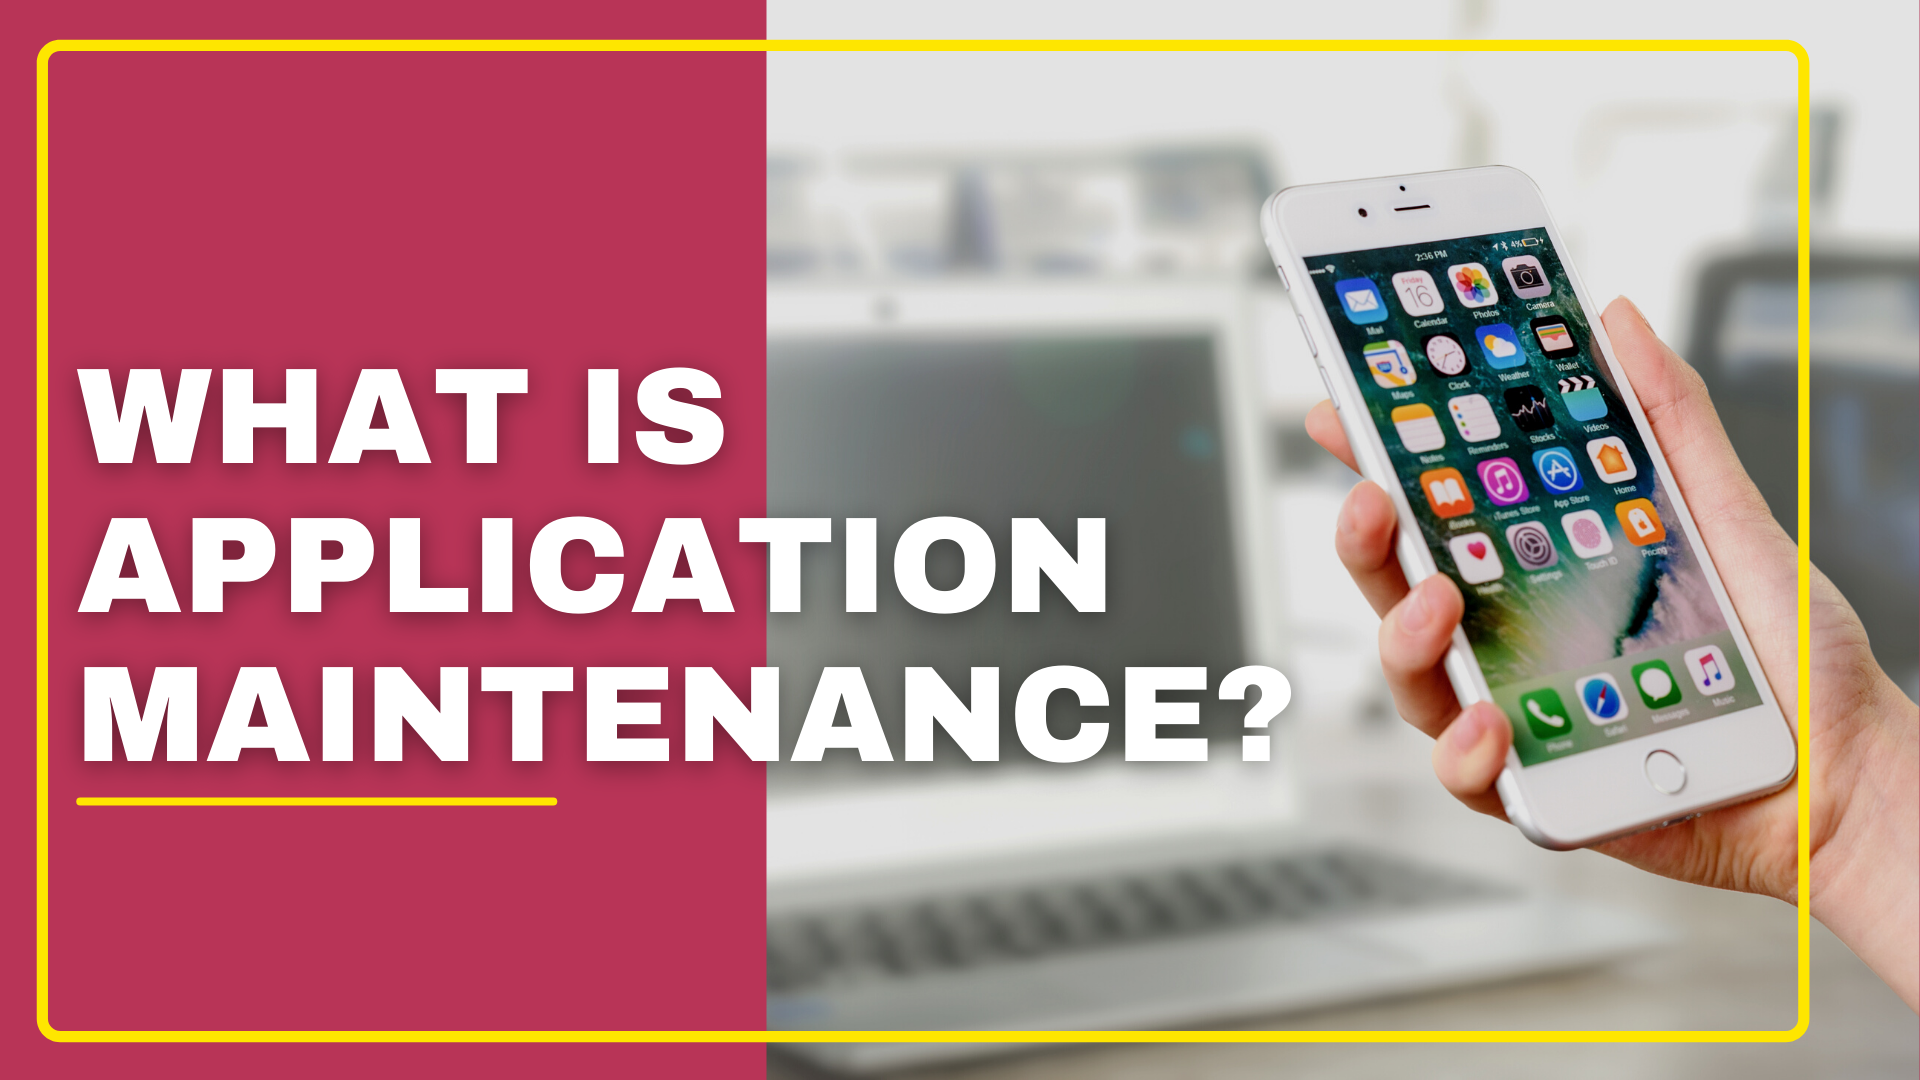 What is Application Maintenance?